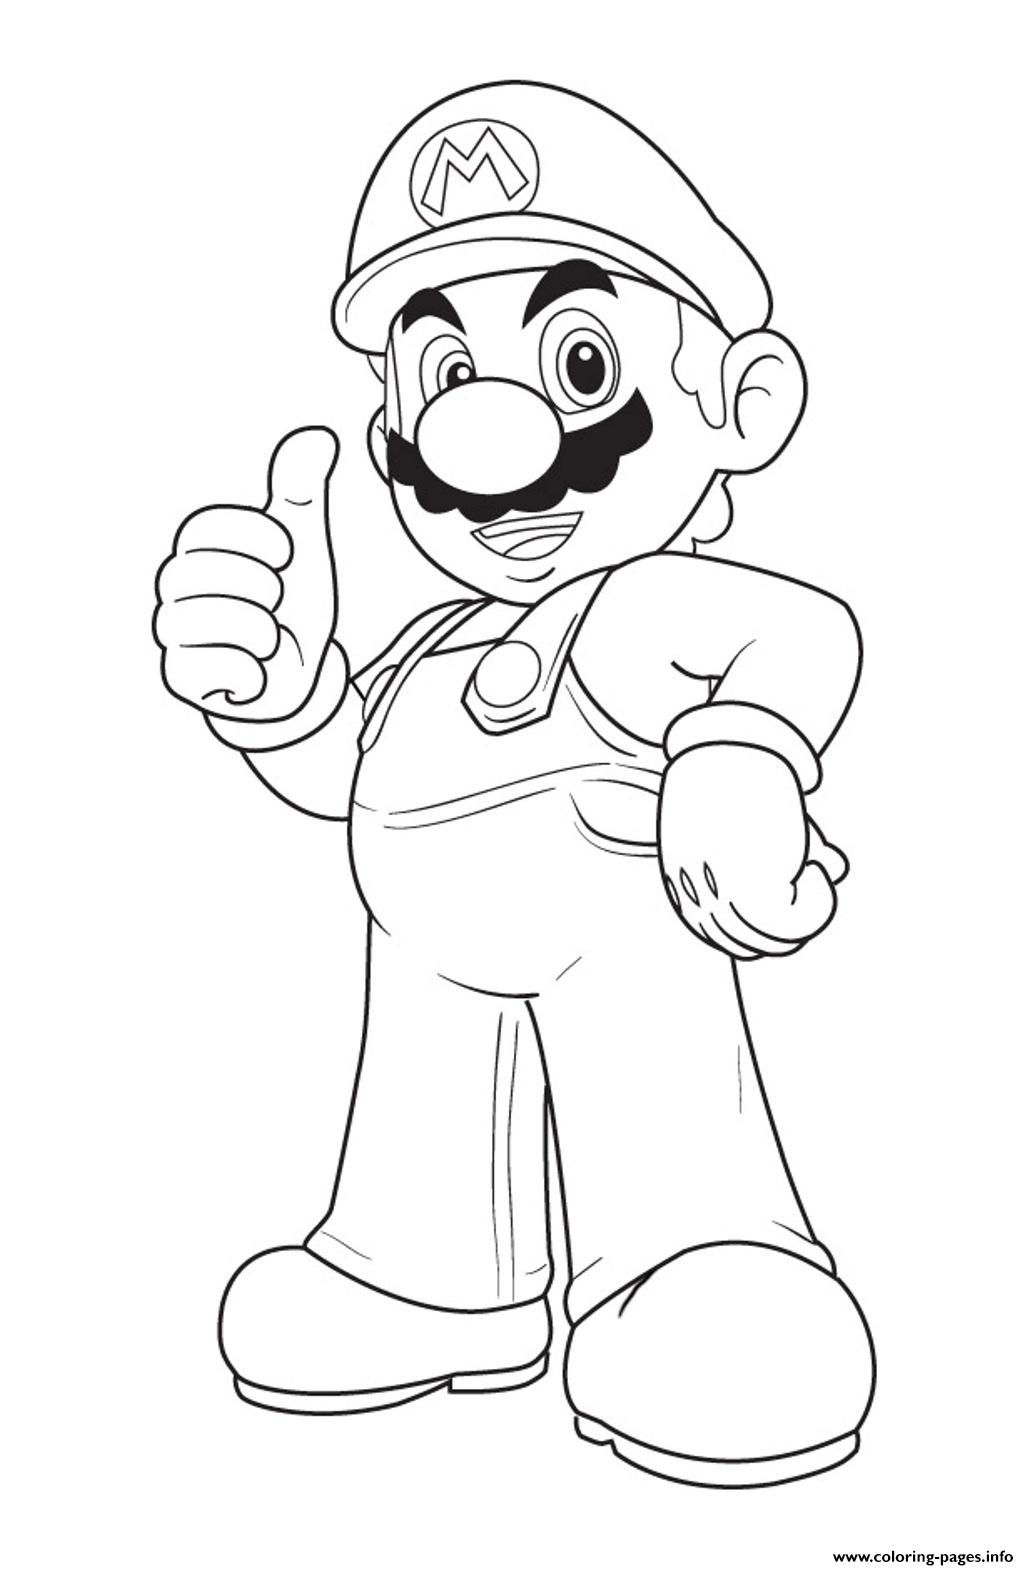 Mario Bros S Freec774 coloring pages